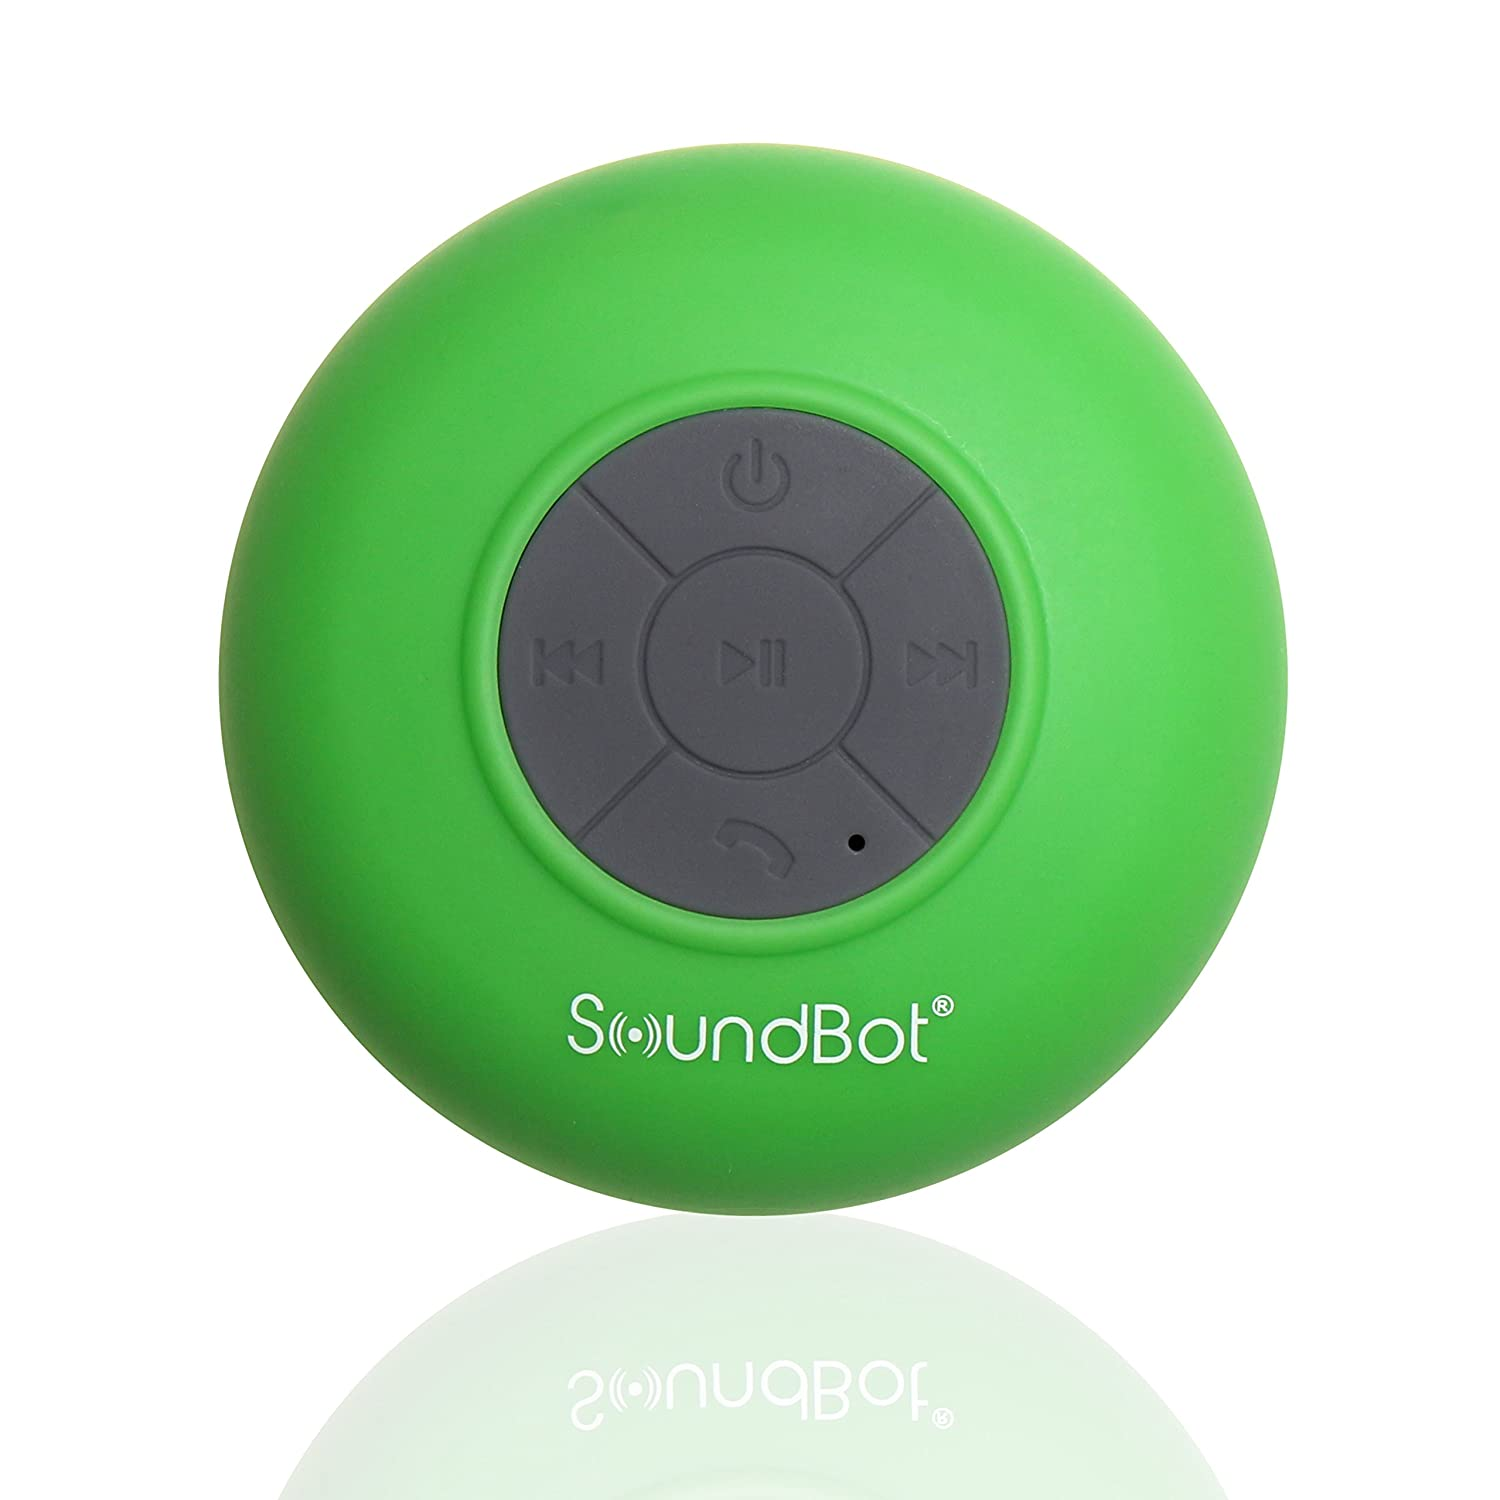 SoundBot SB510 HD Water Proof Bluetooth 3.0 Speaker, Mini Water Resistant Wireless Shower Speaker, Handsfree Portable Speakerphone with Built-in Mic, 6hrs of playtime ..